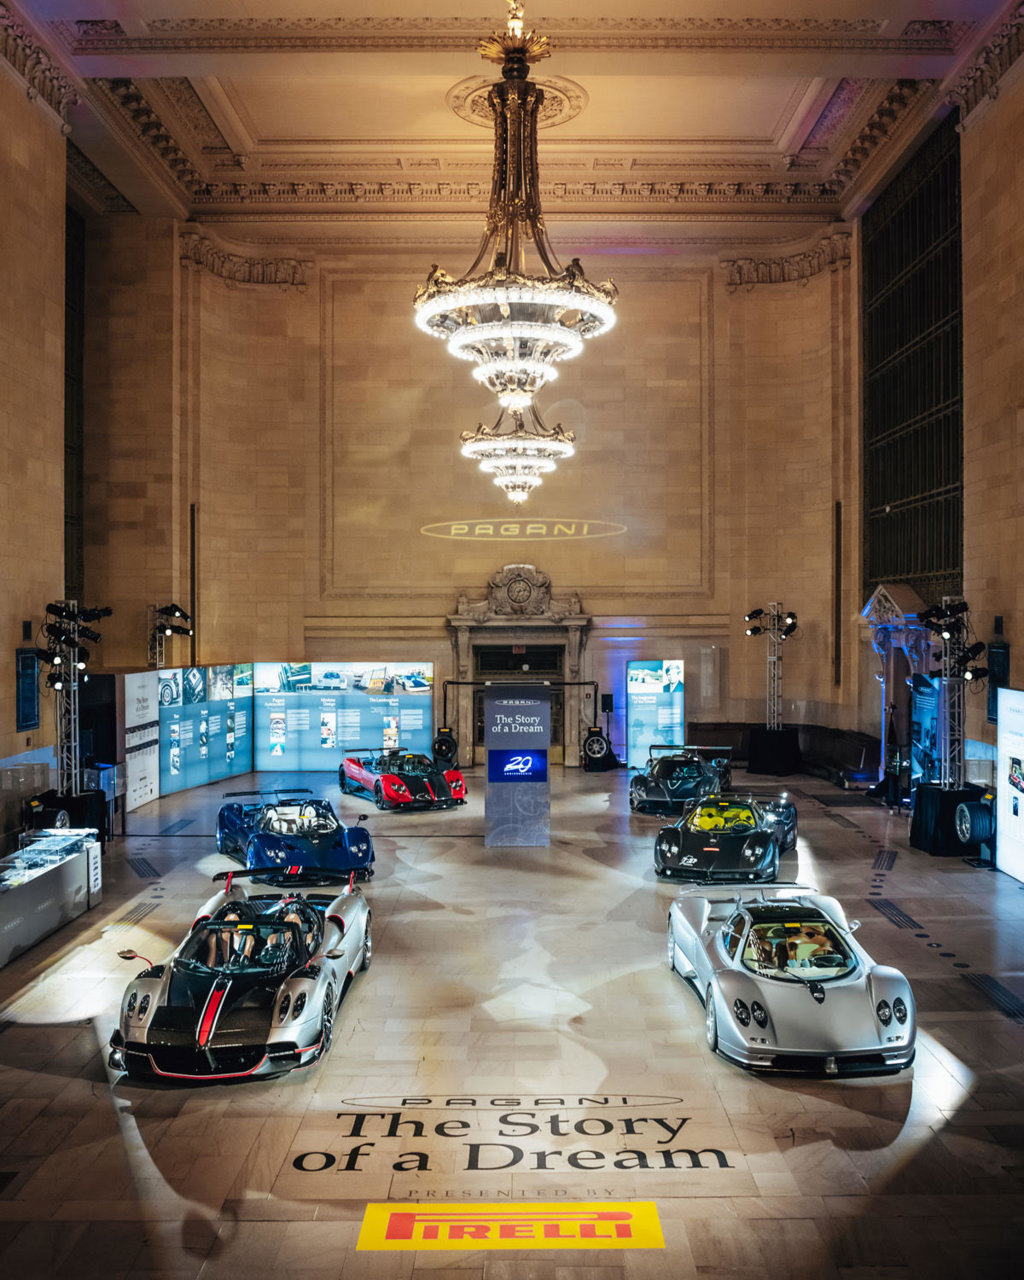 paganis-displayed-in-grand-central-7.jpg